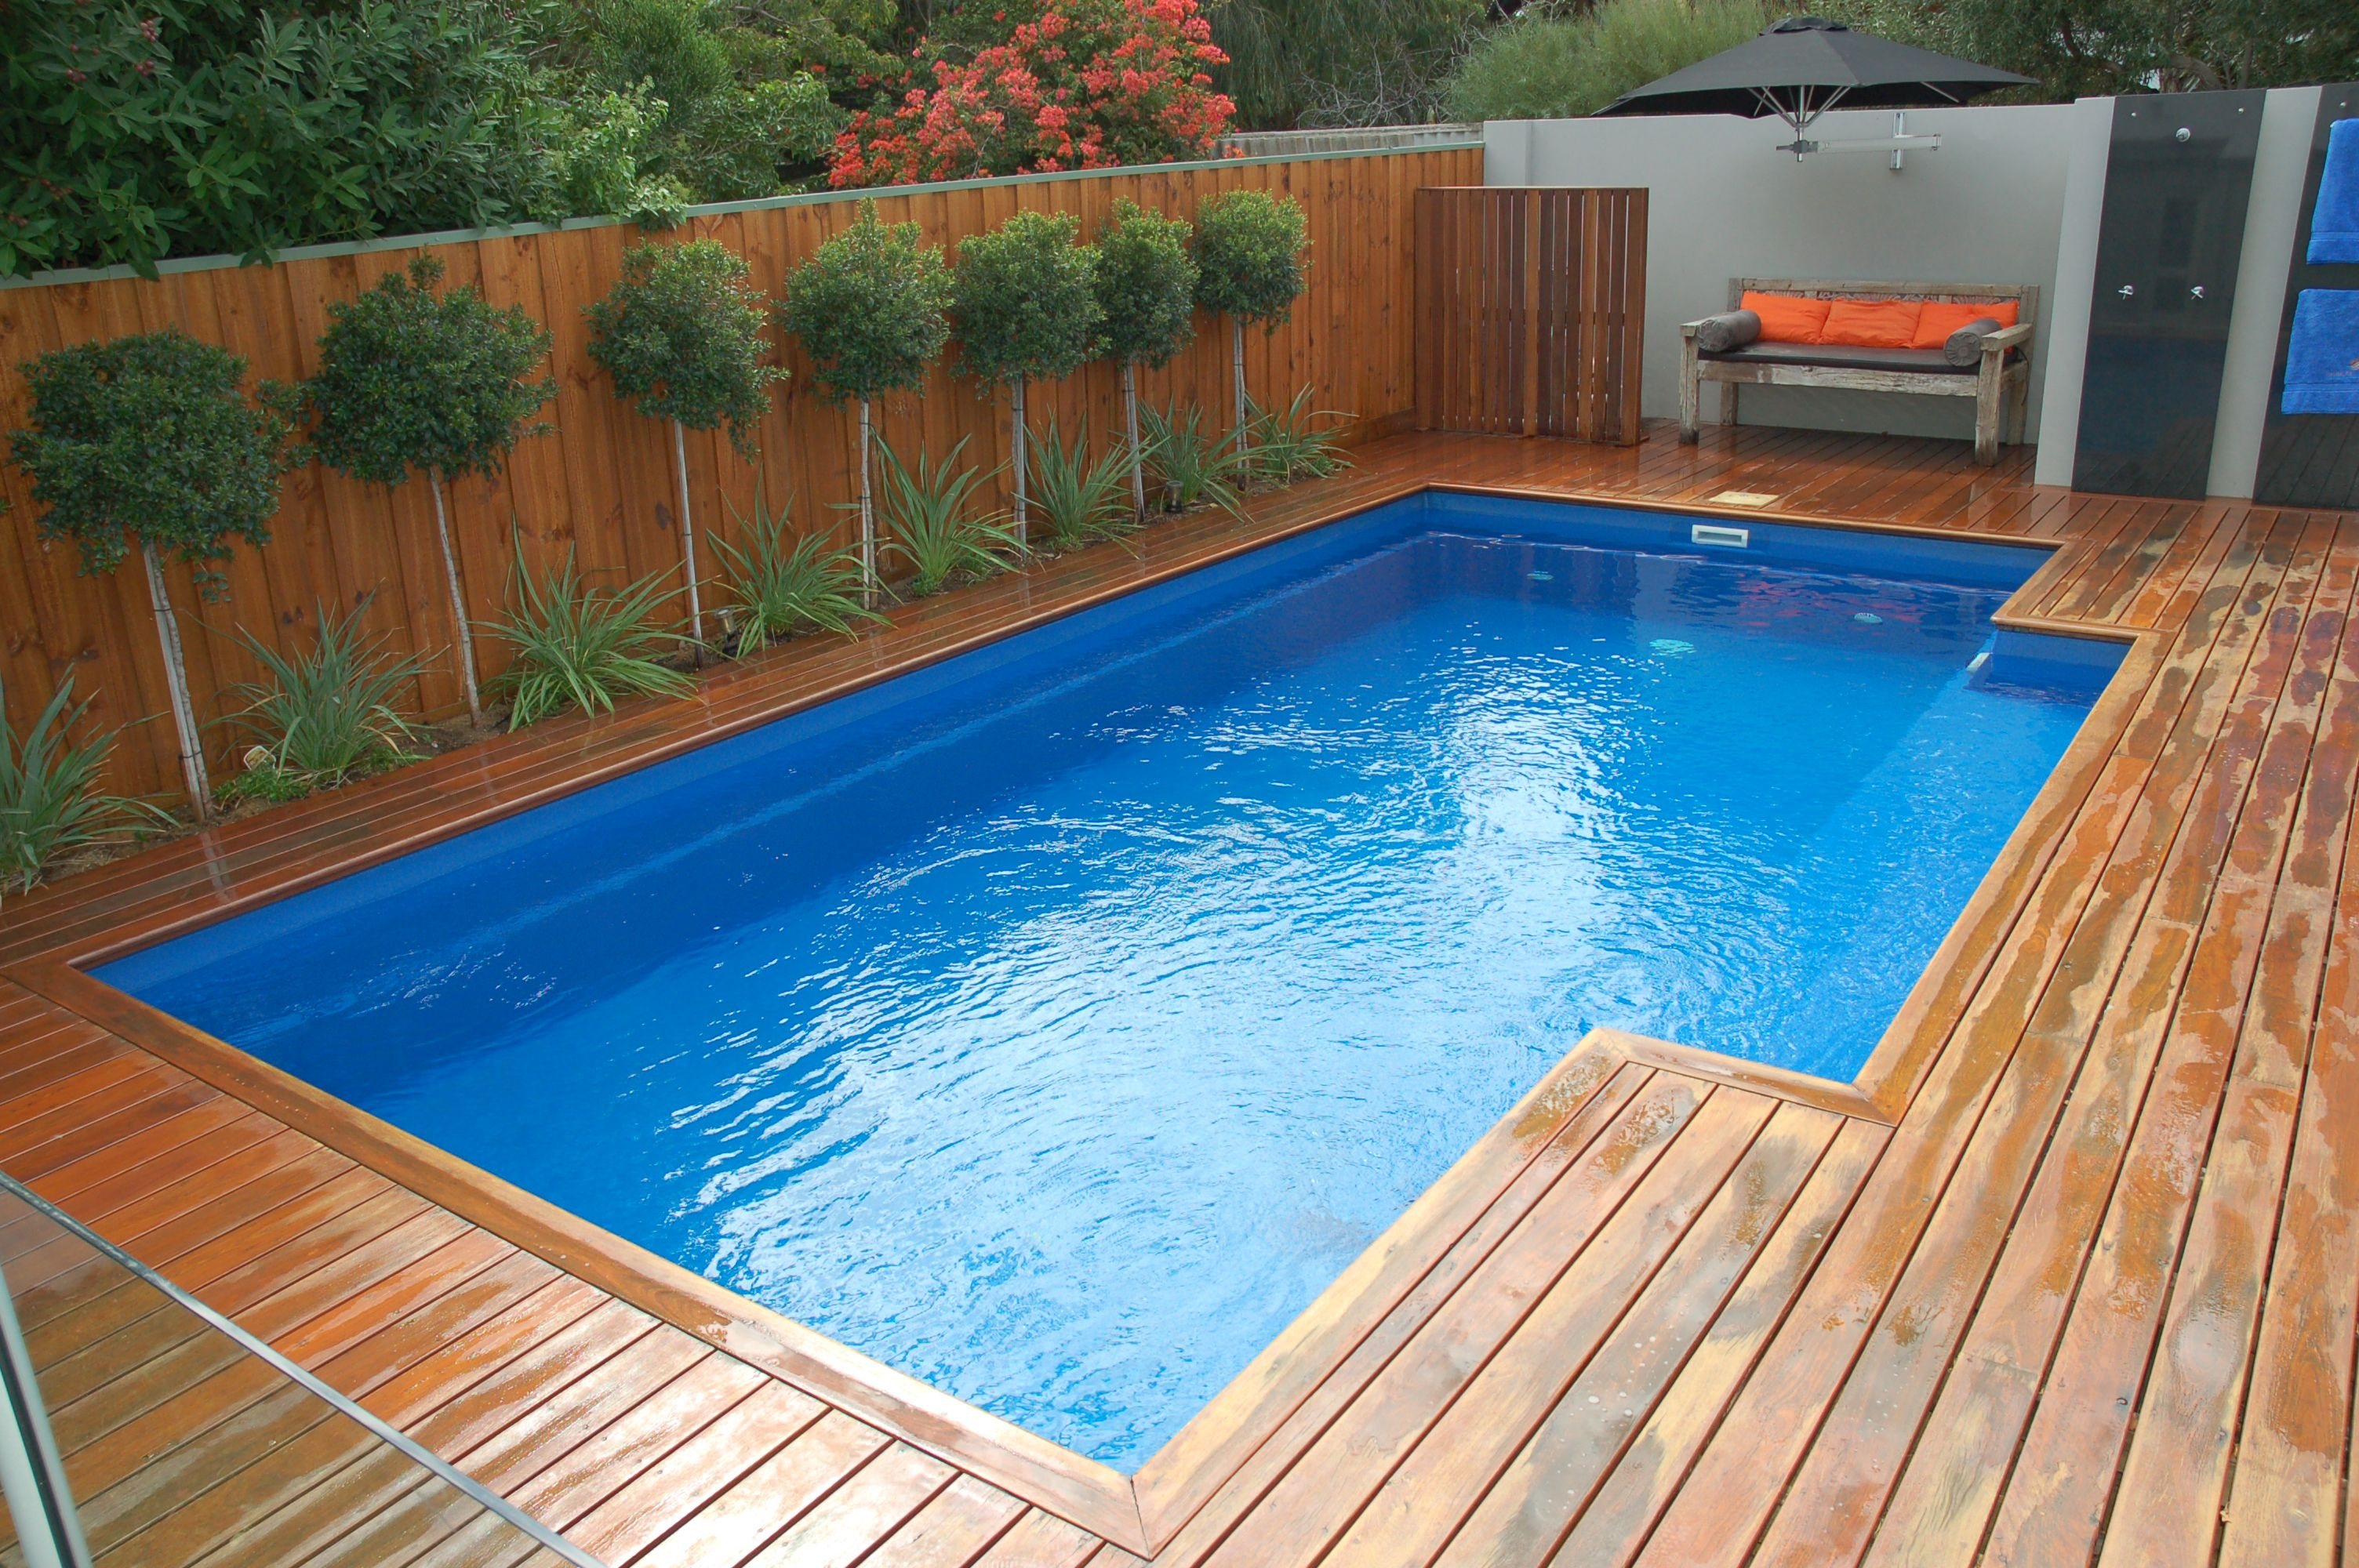 Image Result For Inground Pool Wood Deck Decks Around Pools Leisure Pools Outdoor Pool Area